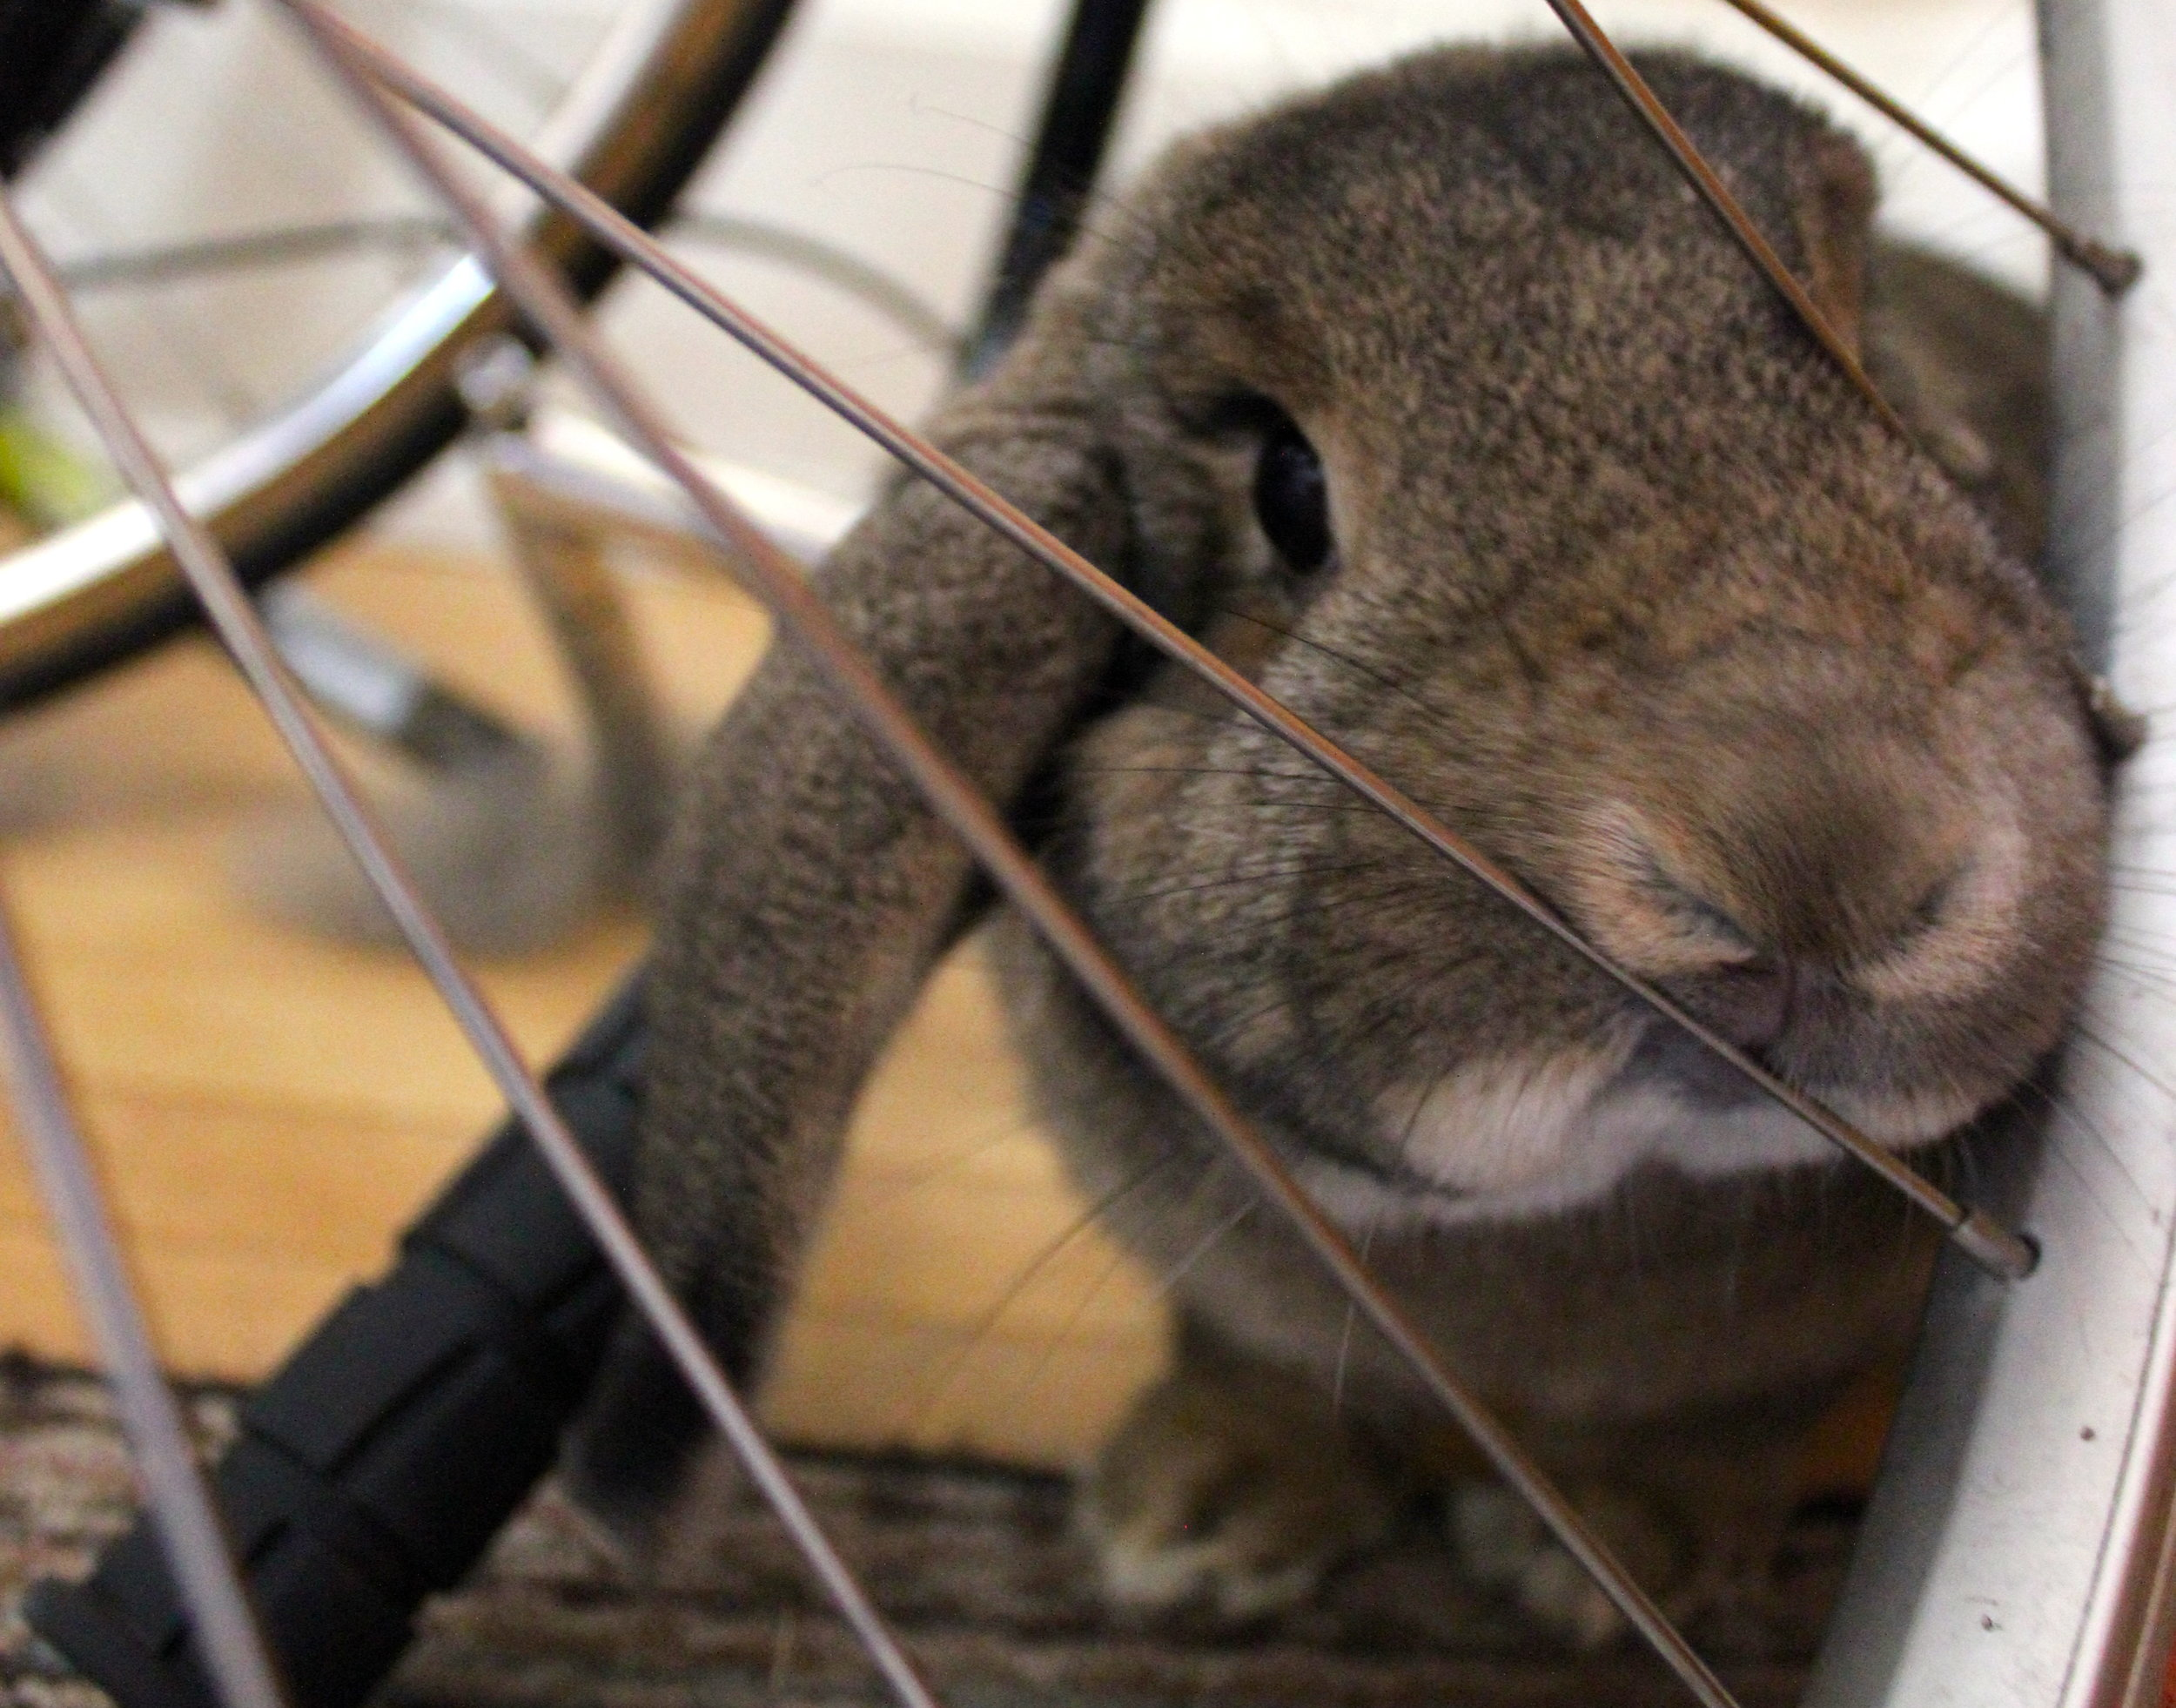 Forensic Scientist Bunny Sniffs Hooman's Bike for Signs of the Farmers Market